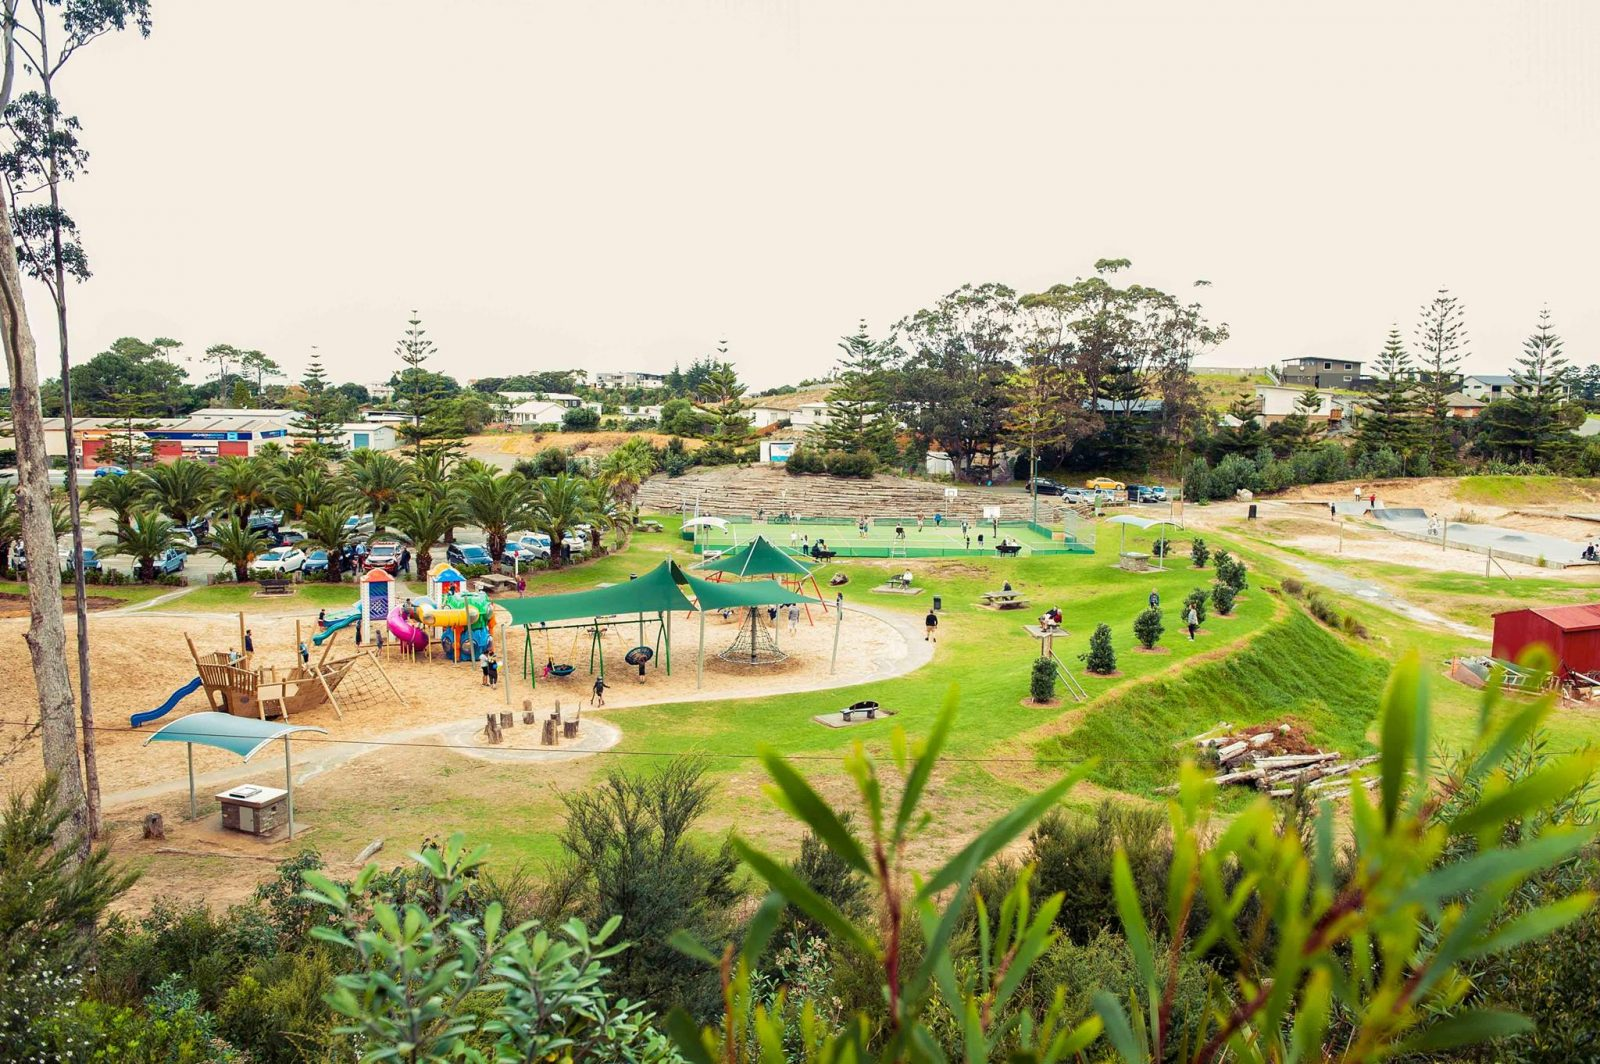 Things To Do In Mangawhai - Mangawhai Activity Zone